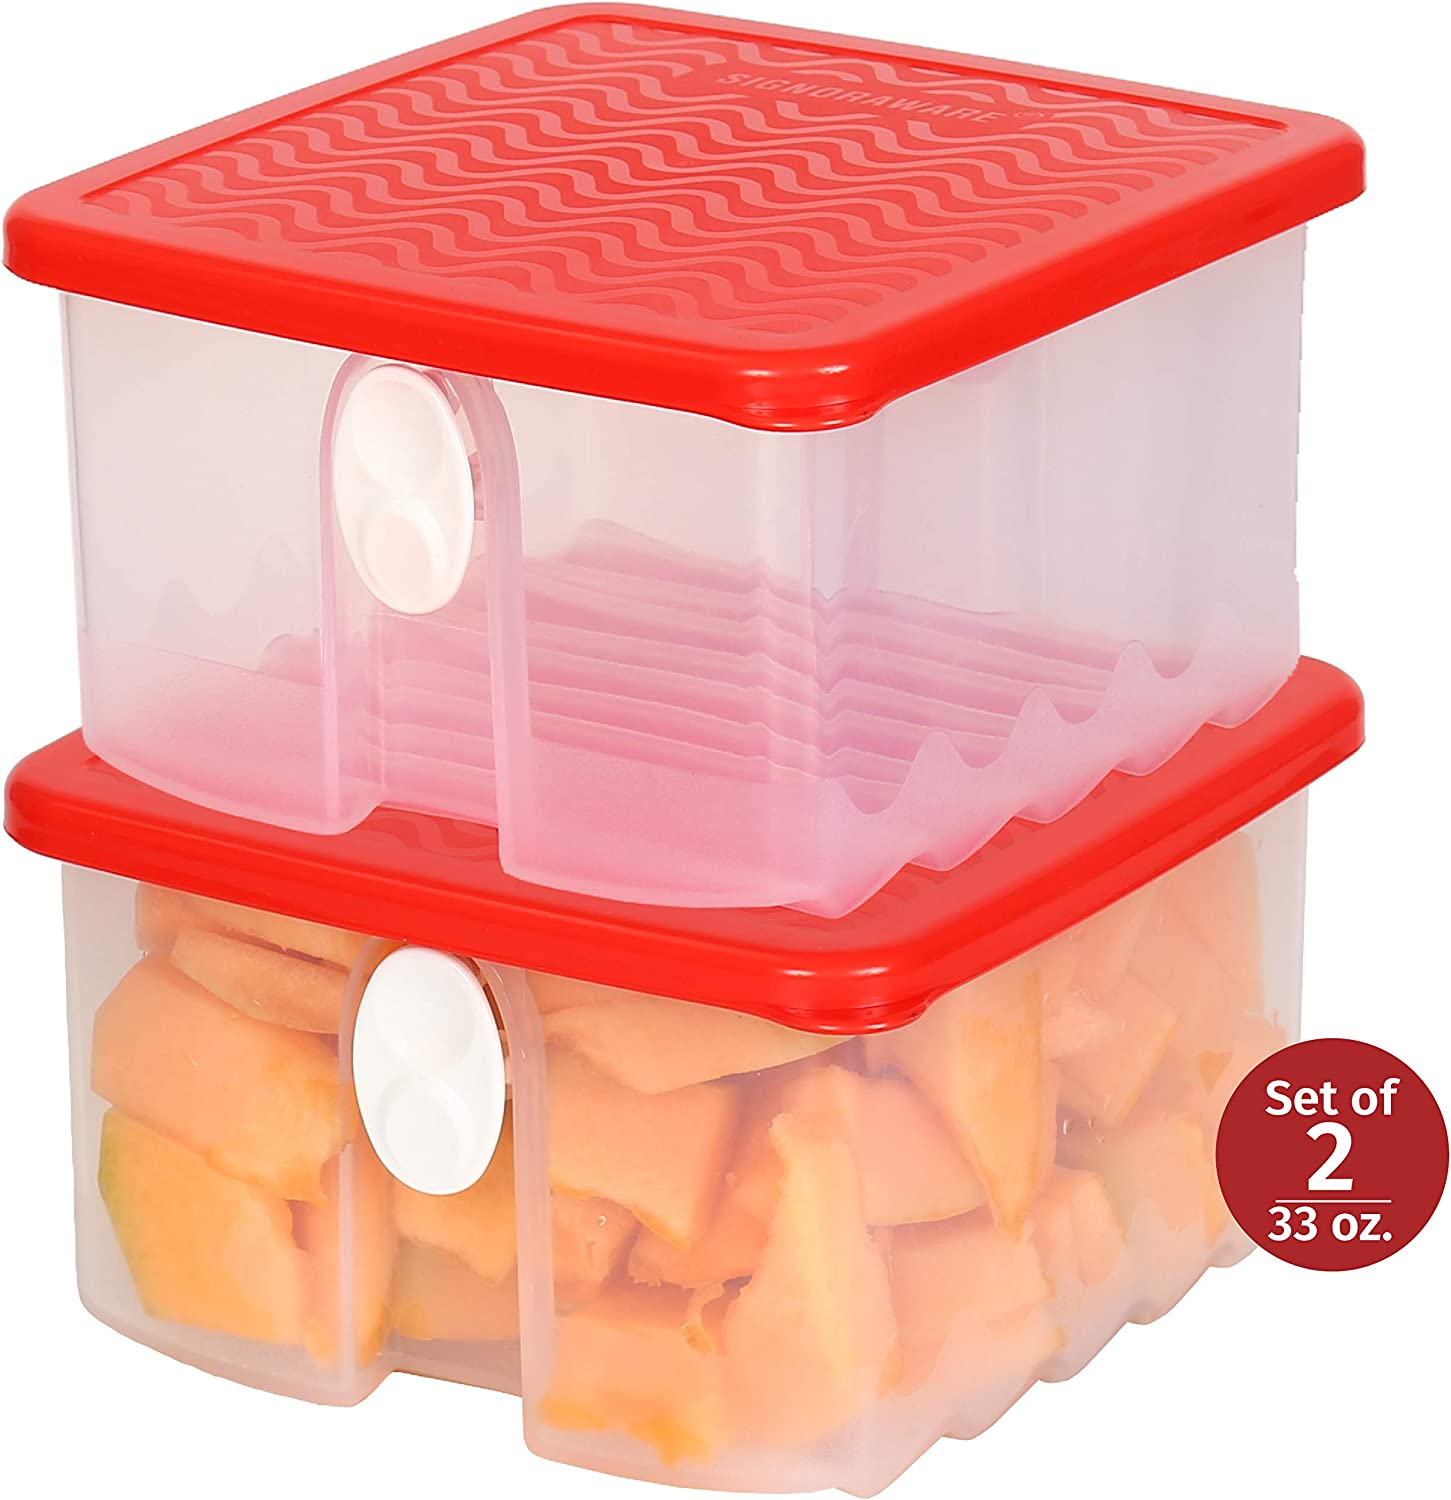 Fresh Fruit and Vegetable Food Keeper Saver Storage Container with Air Vented Lids Produce Keeper Dishwasher, Freezer, Refrigerator-Safe – 100% Food-Safe, BPA-Free Plastic Organizer - Durable Seal